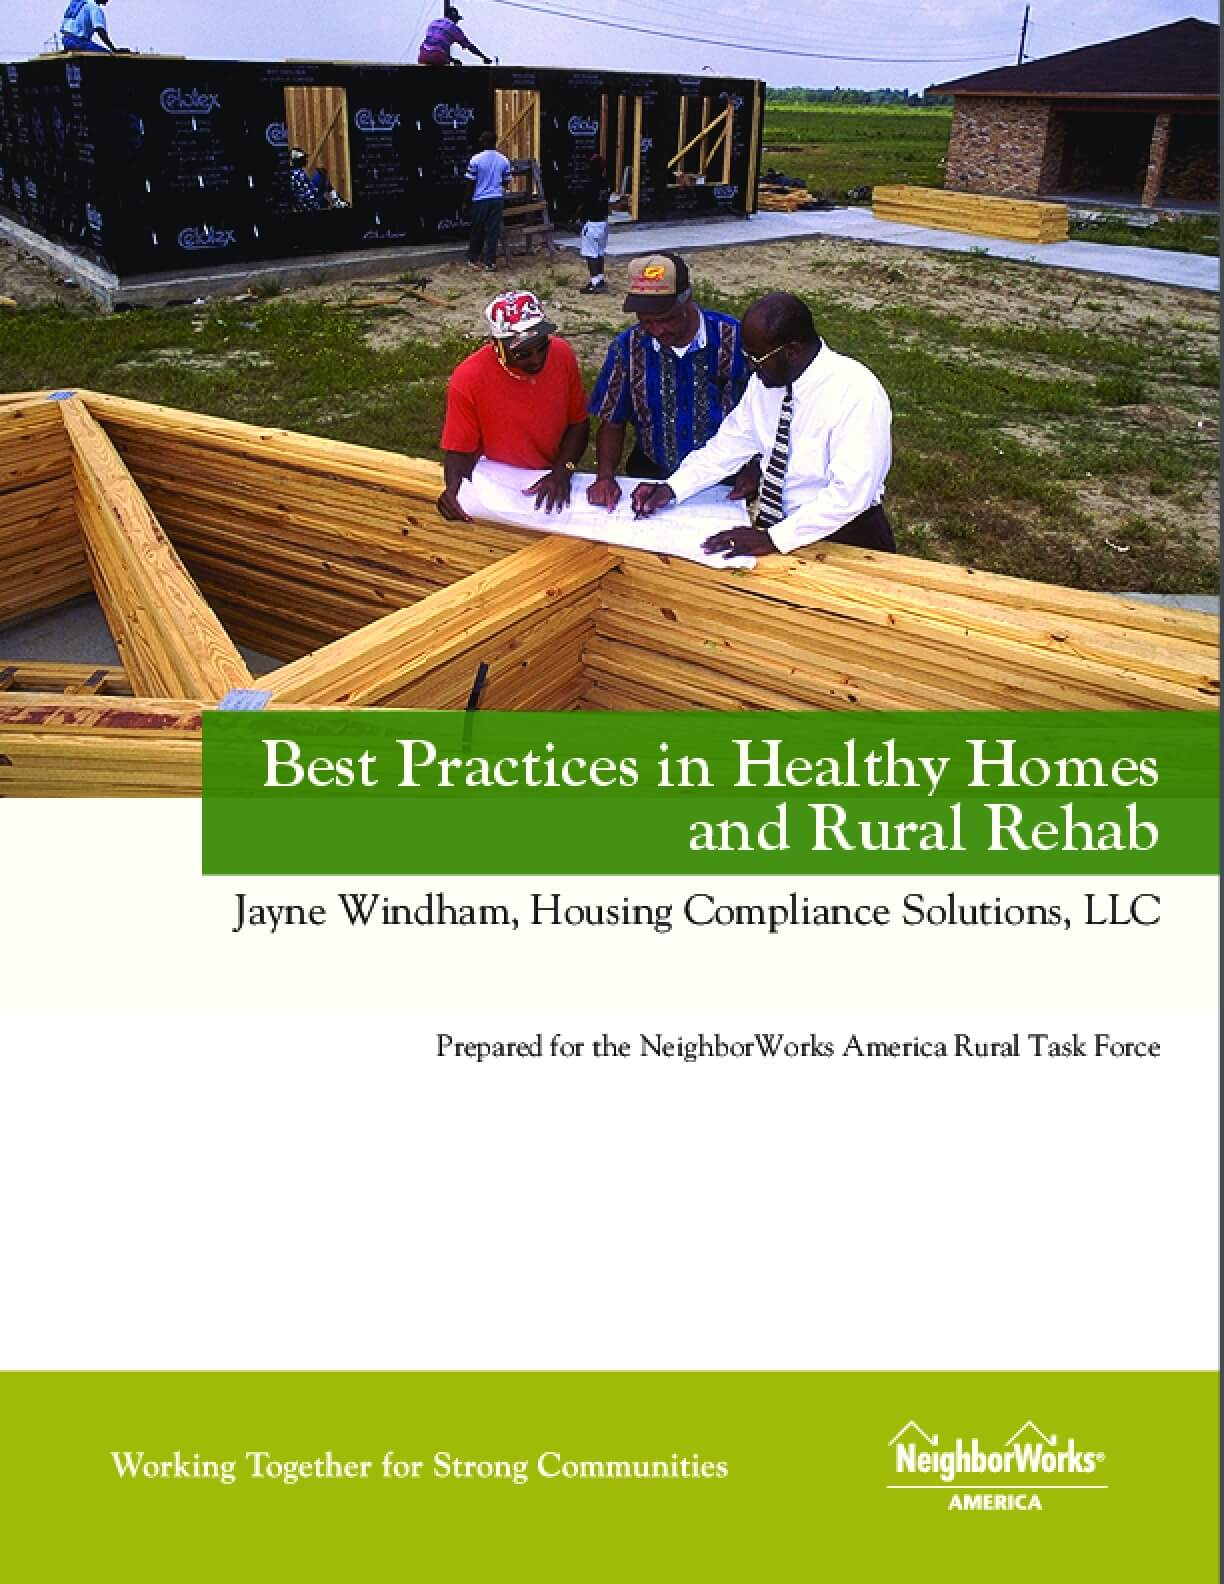 Best Practices in Healthy Homes and Rural Rehab